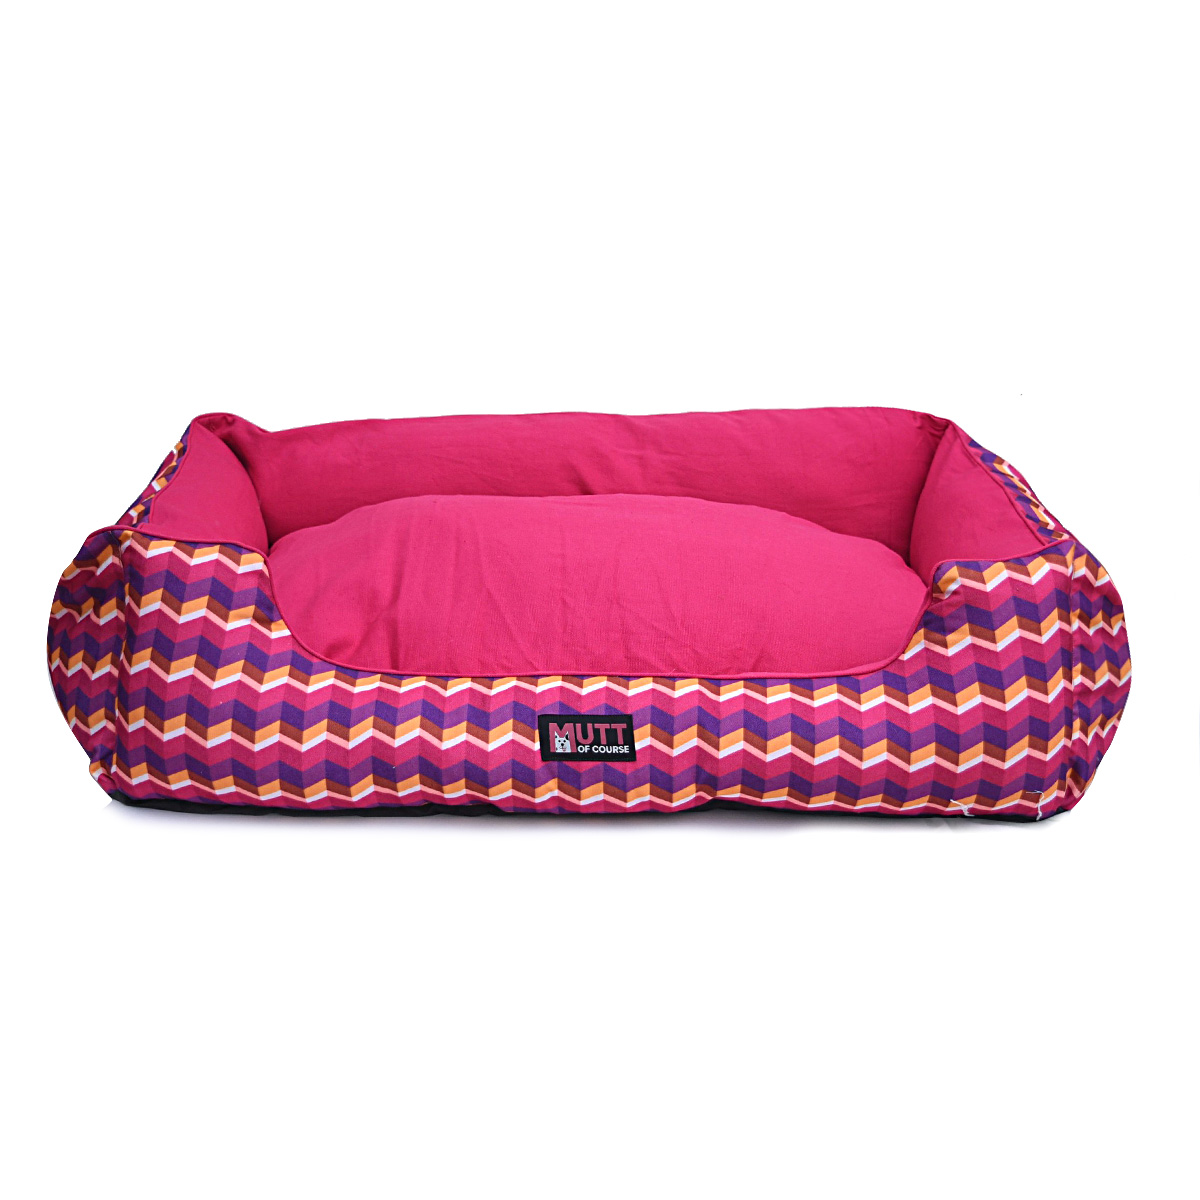 Mutt Of Course Geometrical Dark Lounger Bed - Large